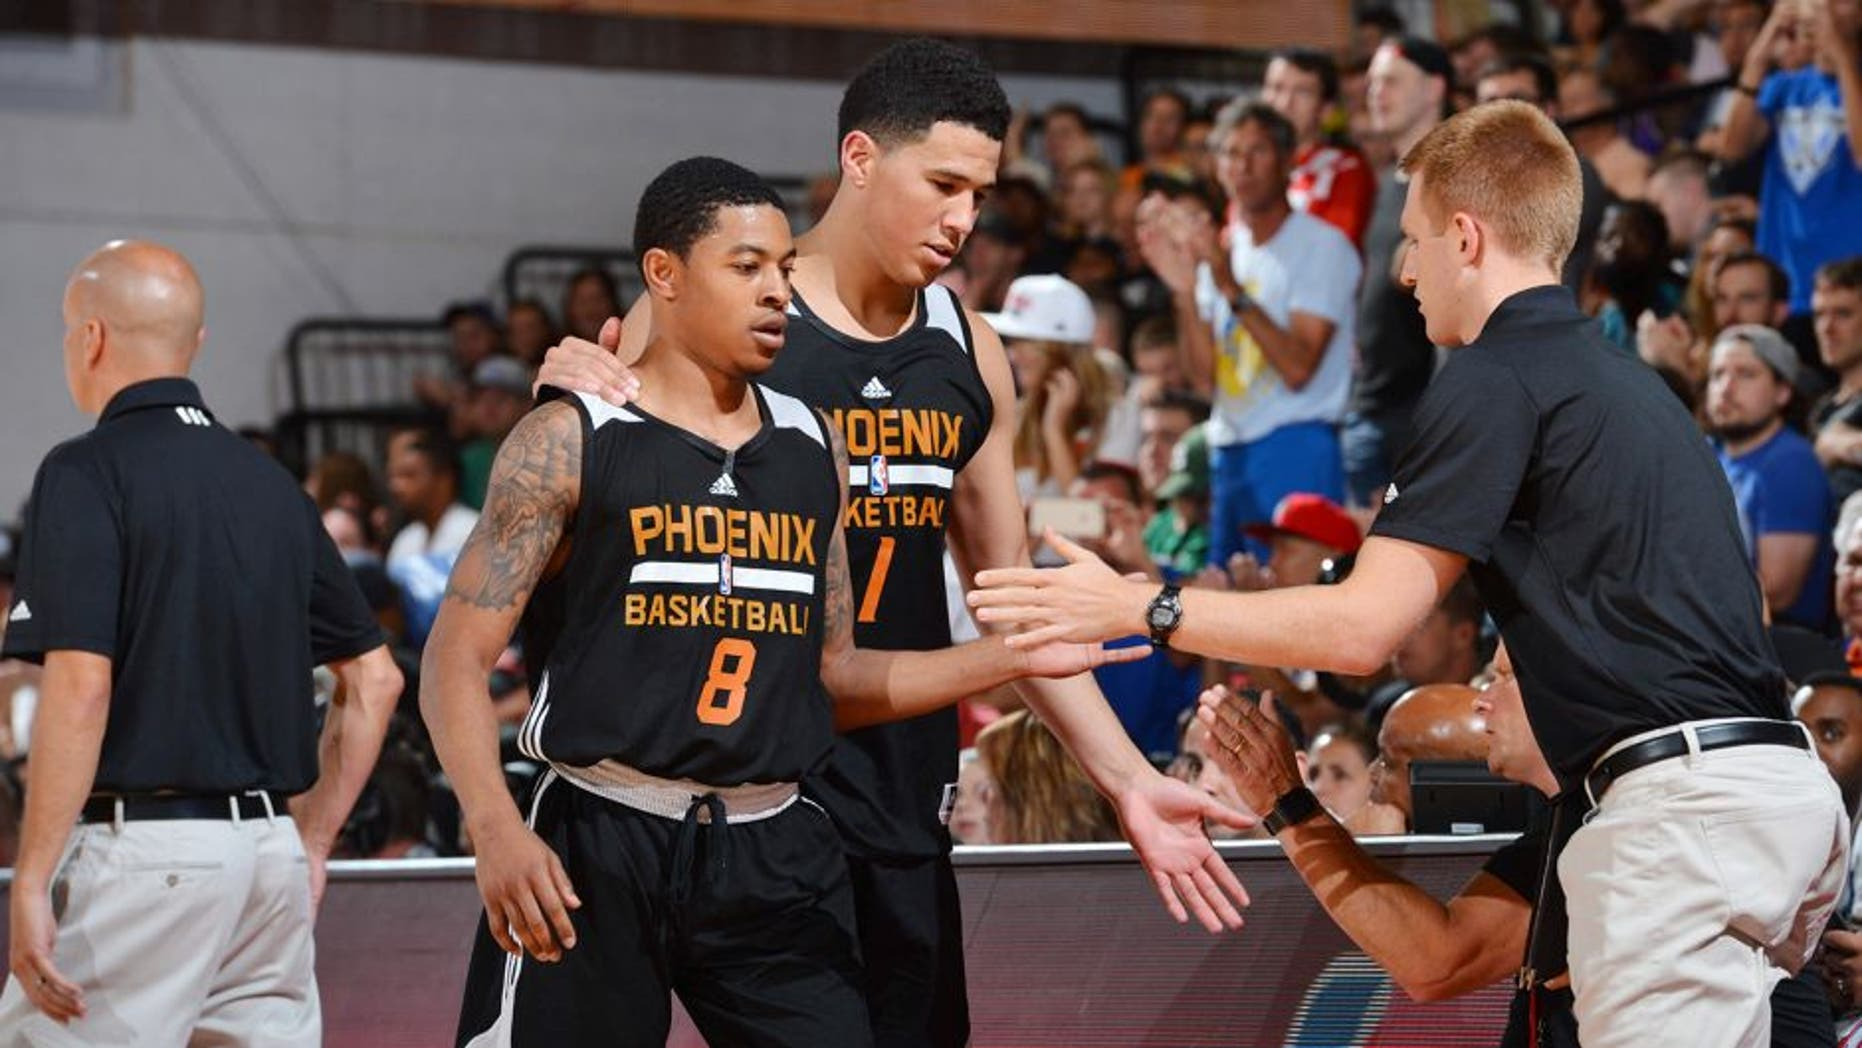 LAS VEGAS, NV - JULY 9: Devin Booker #1 of the Phoenix Suns and Tyler Ulis #8 of the Phoenix Suns shake hands with their teammates during the game against the Portland Trail Blazers during the 2016 NBA Las Vegas Summer League game on July 9, 2016 at the Cox Pavillion in Las Vegas, Nevada. NOTE TO USER: User expressly acknowledges and agrees that, by downloading and or using this photograph, User is consenting to the terms and conditions of the Getty Images License Agreement. Mandatory Copyright Notice: Copyright 2016 NBAE (Photo by David Dow/NBAE via Getty Images)